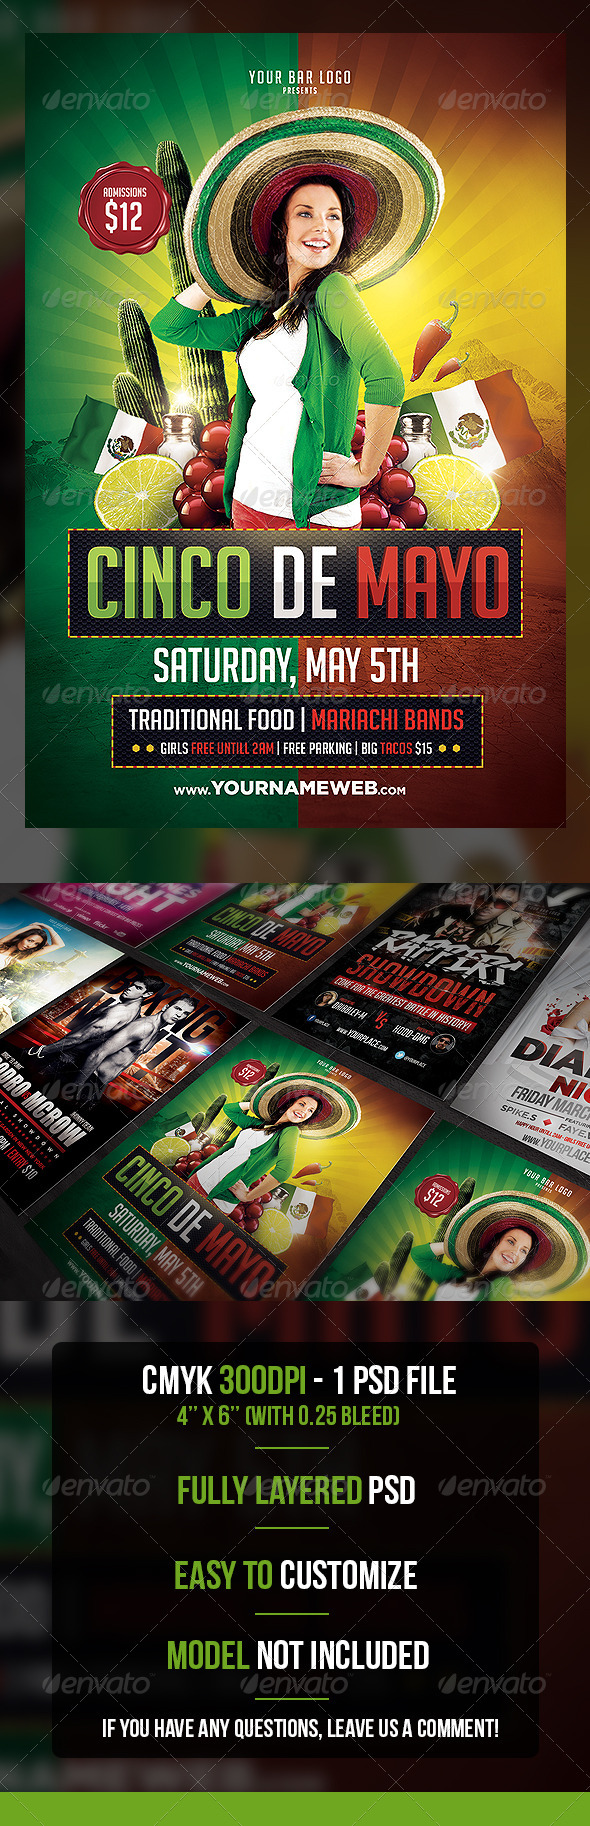 Cinco de Mayo Flyer Template - Flyers Print Templates